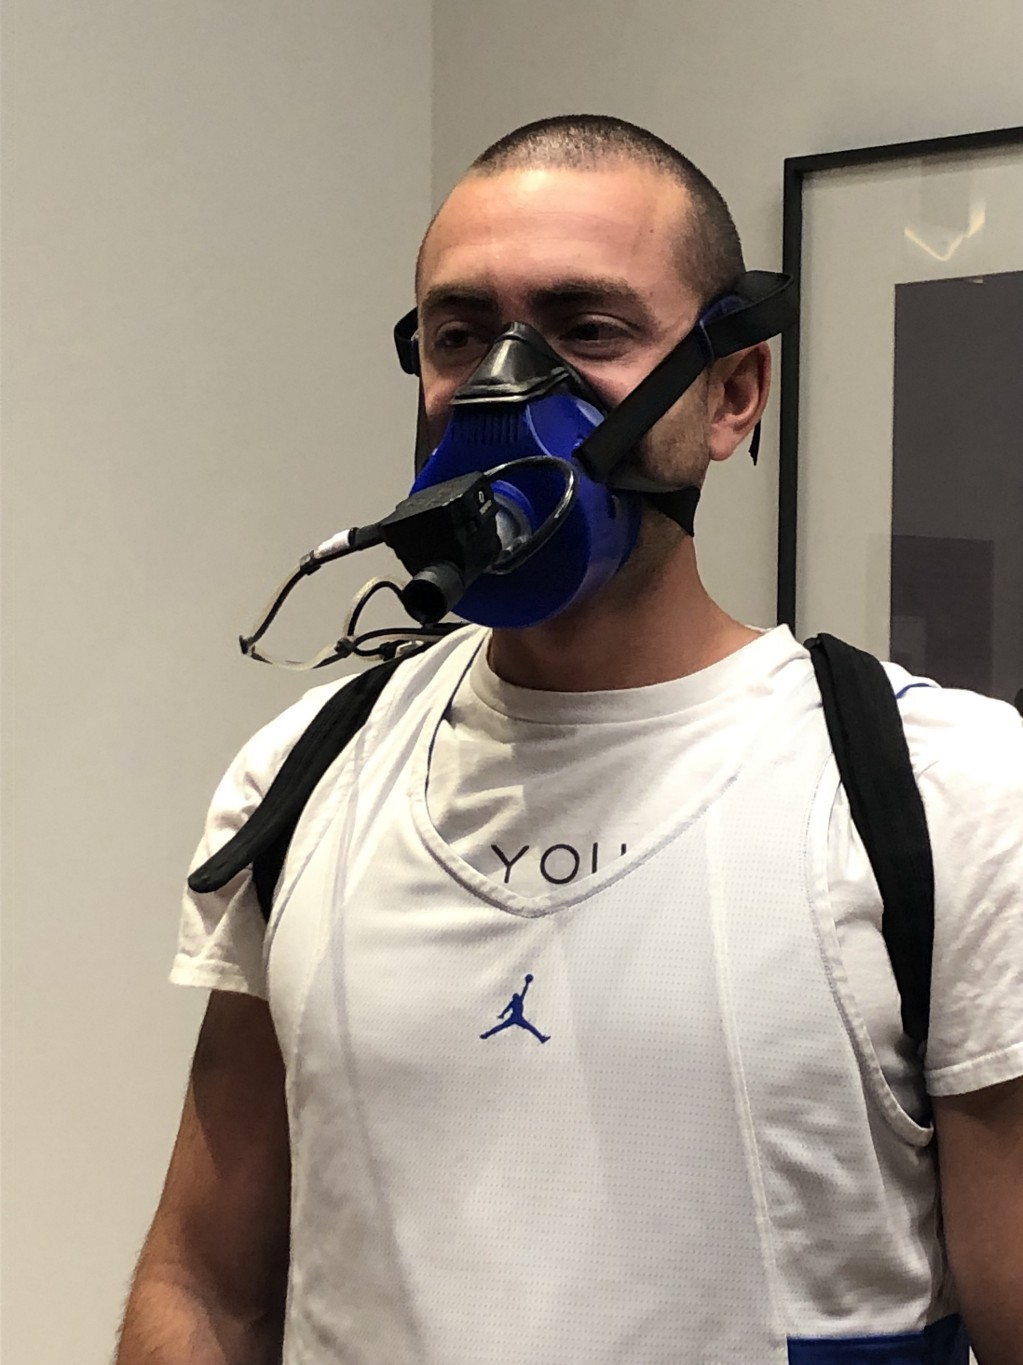 Man wearing a white shirt with a blue mask over the lower half of his face.